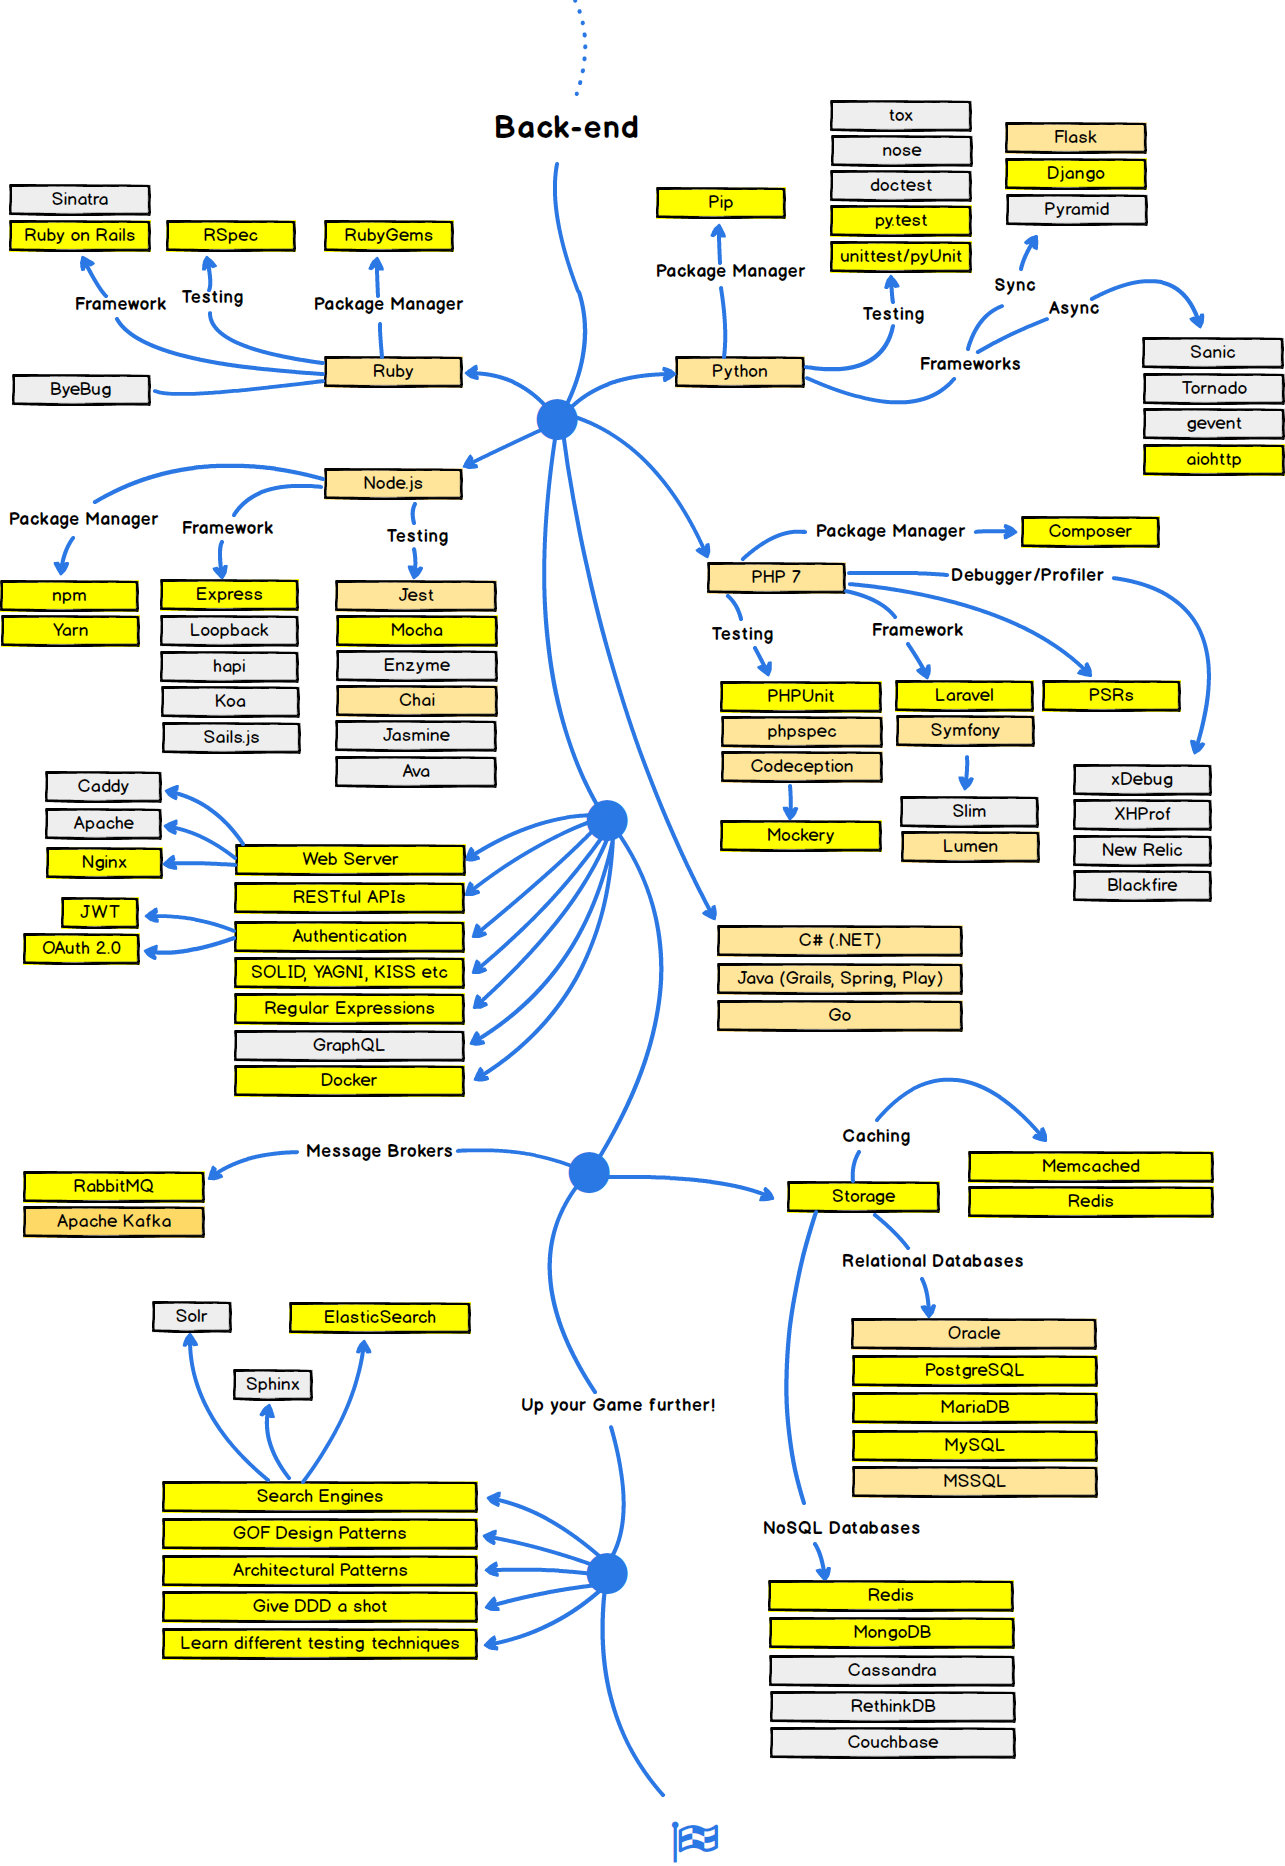 Backend road map